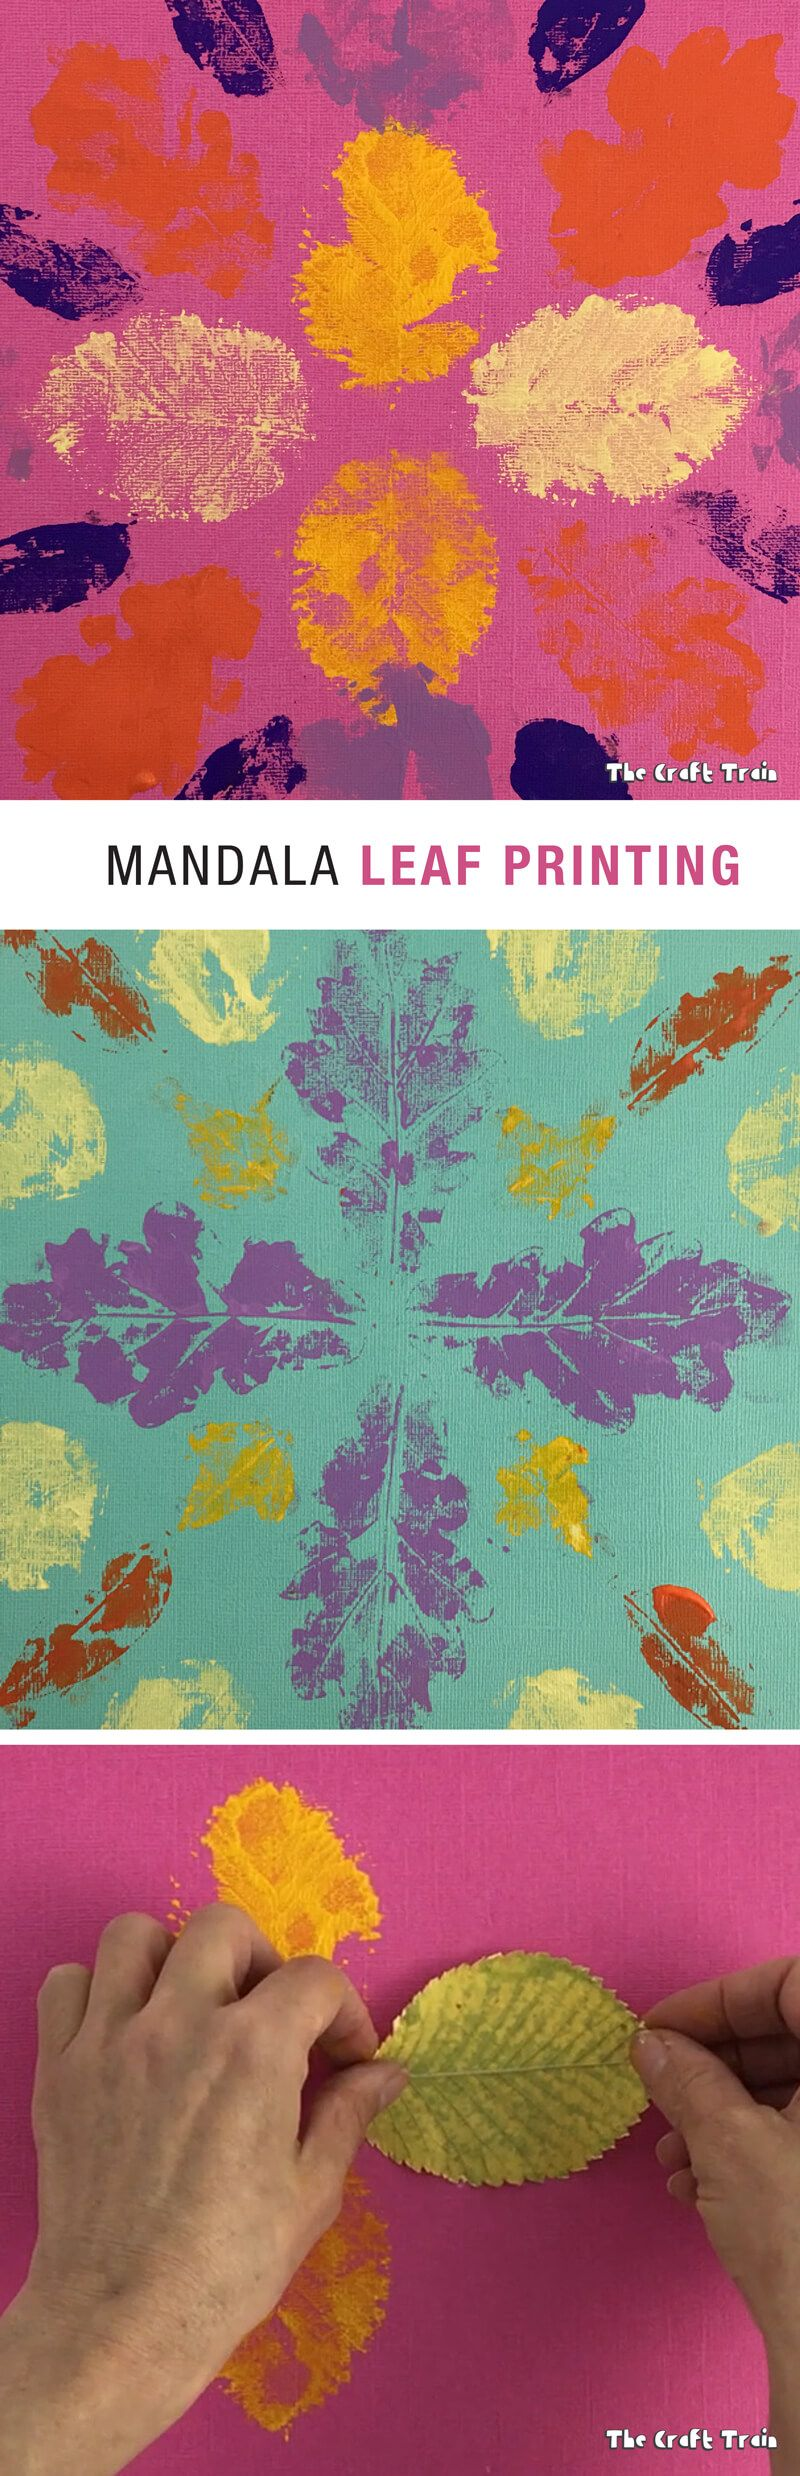 leaf printing mandala art | The Craft Train